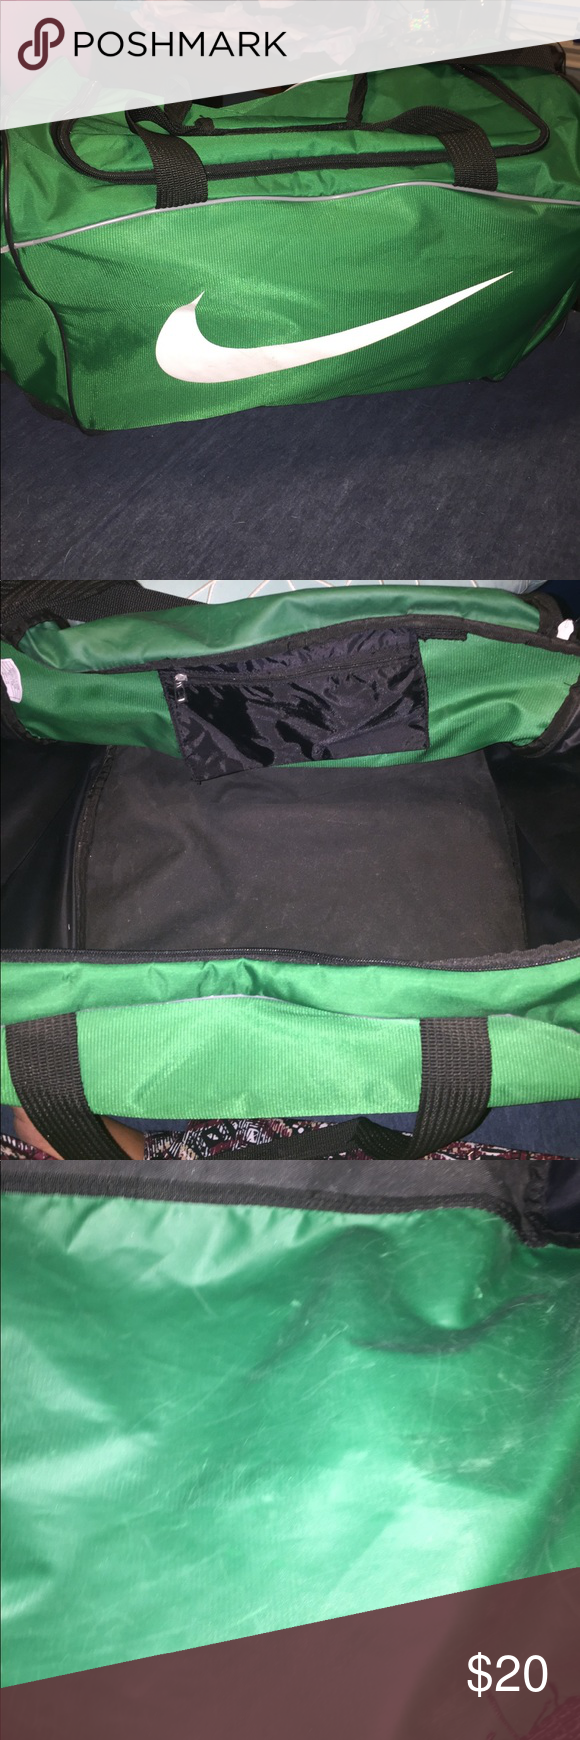 LARGE NIKE DUFFLE BAG NIKE brand bag. This is a large bag with no rips 76f41c26c8